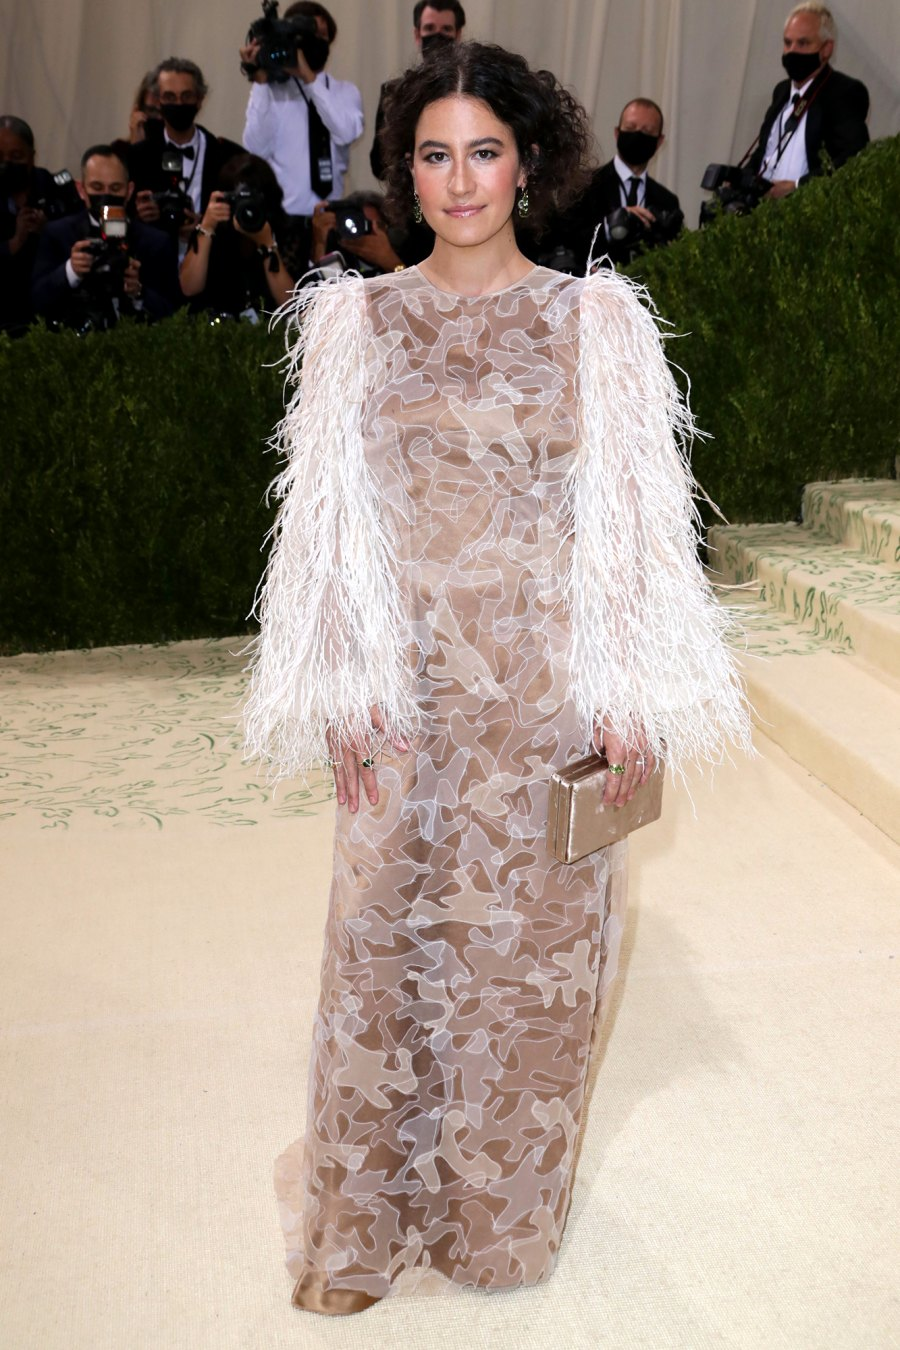 Met Gala 2021 See What The Stars Wore